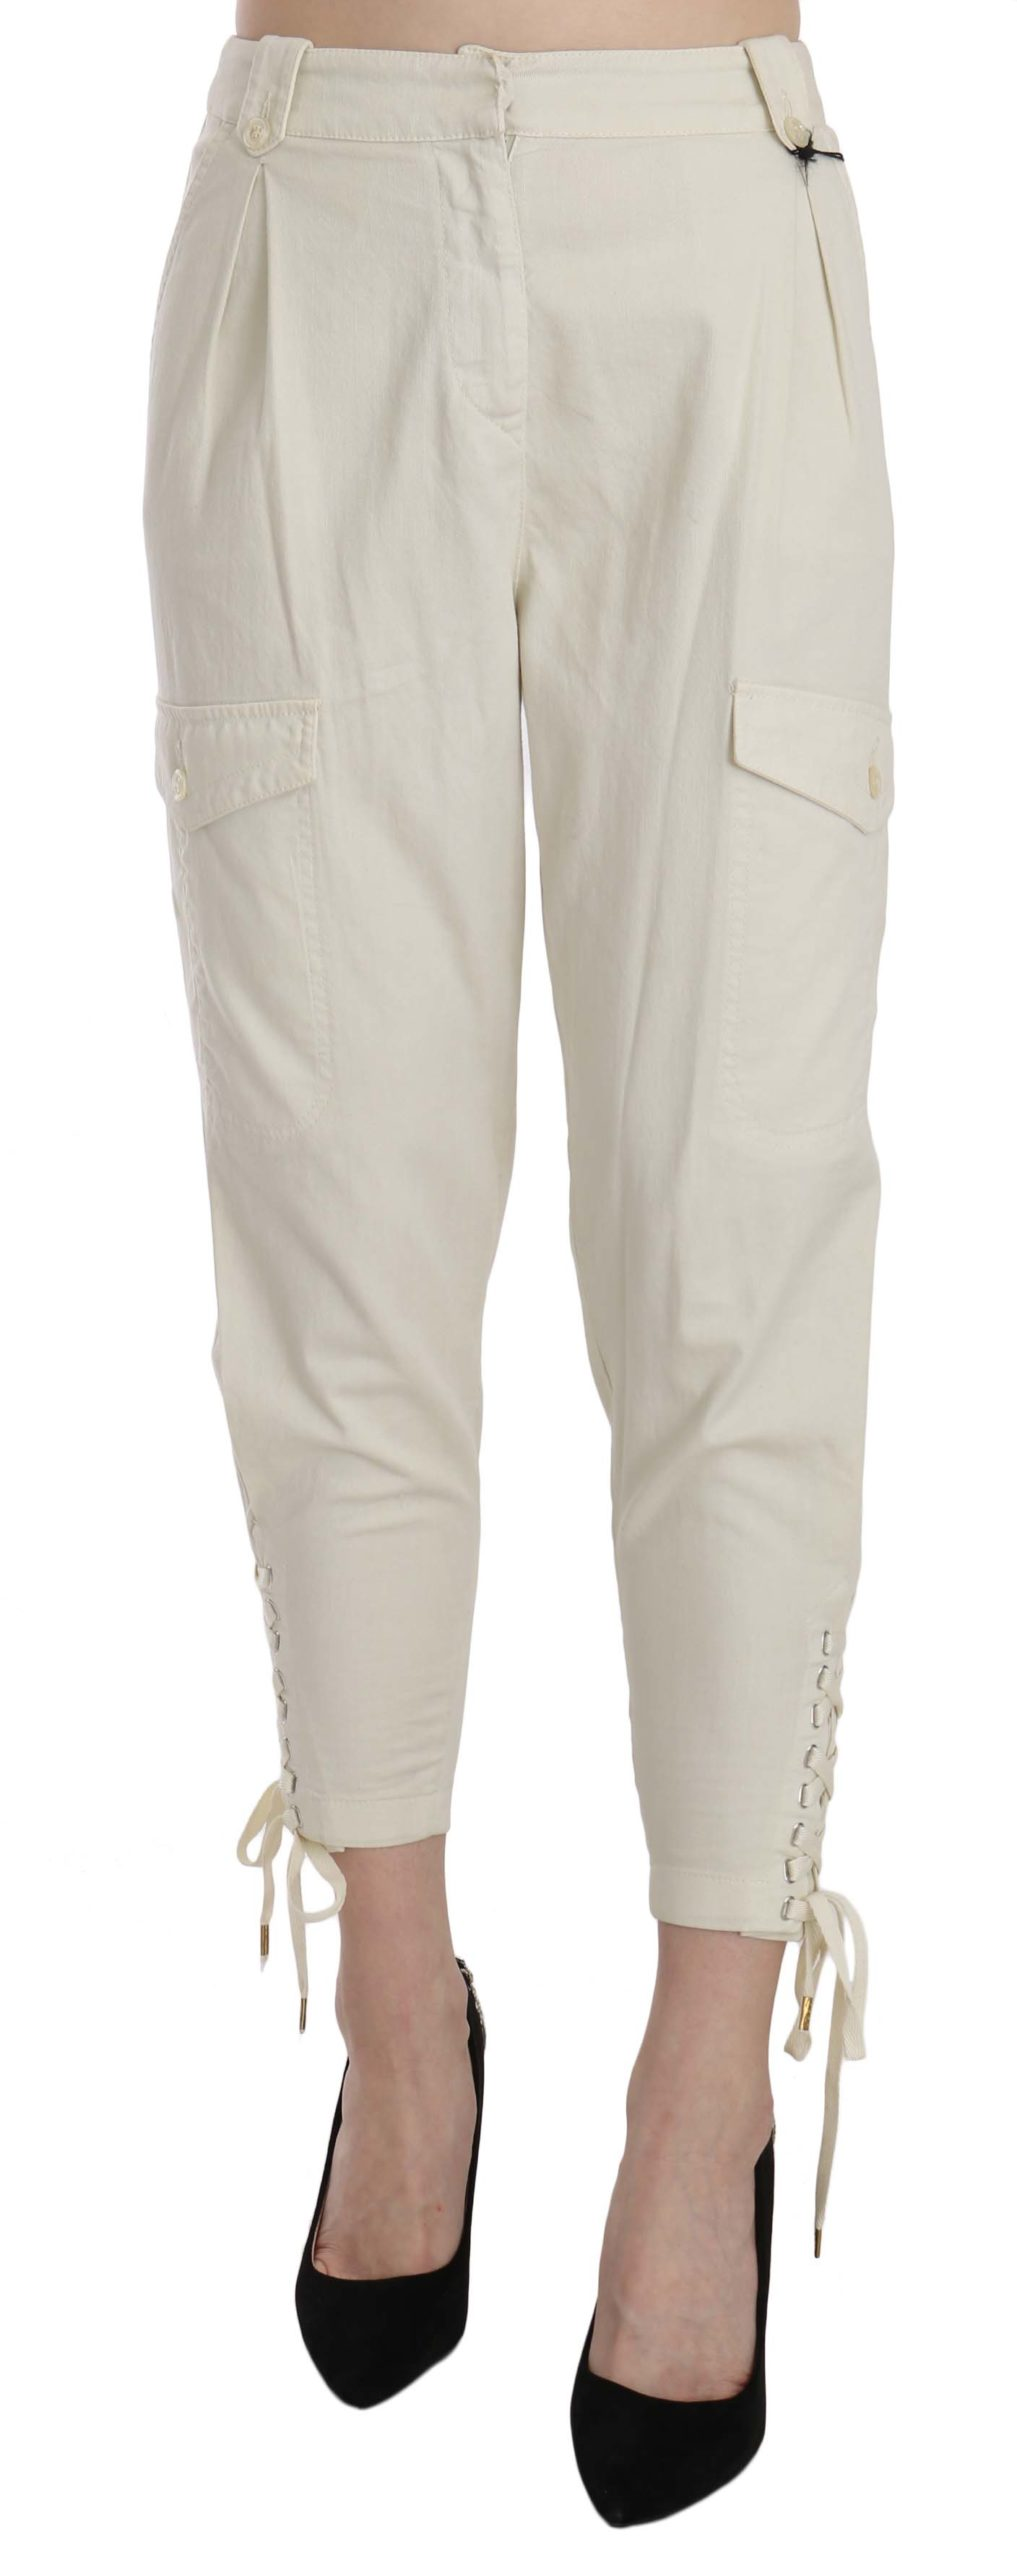 Just Cavalli Women's High Waist Tapered Cropped Trouser White PAN70345 - IT42 M